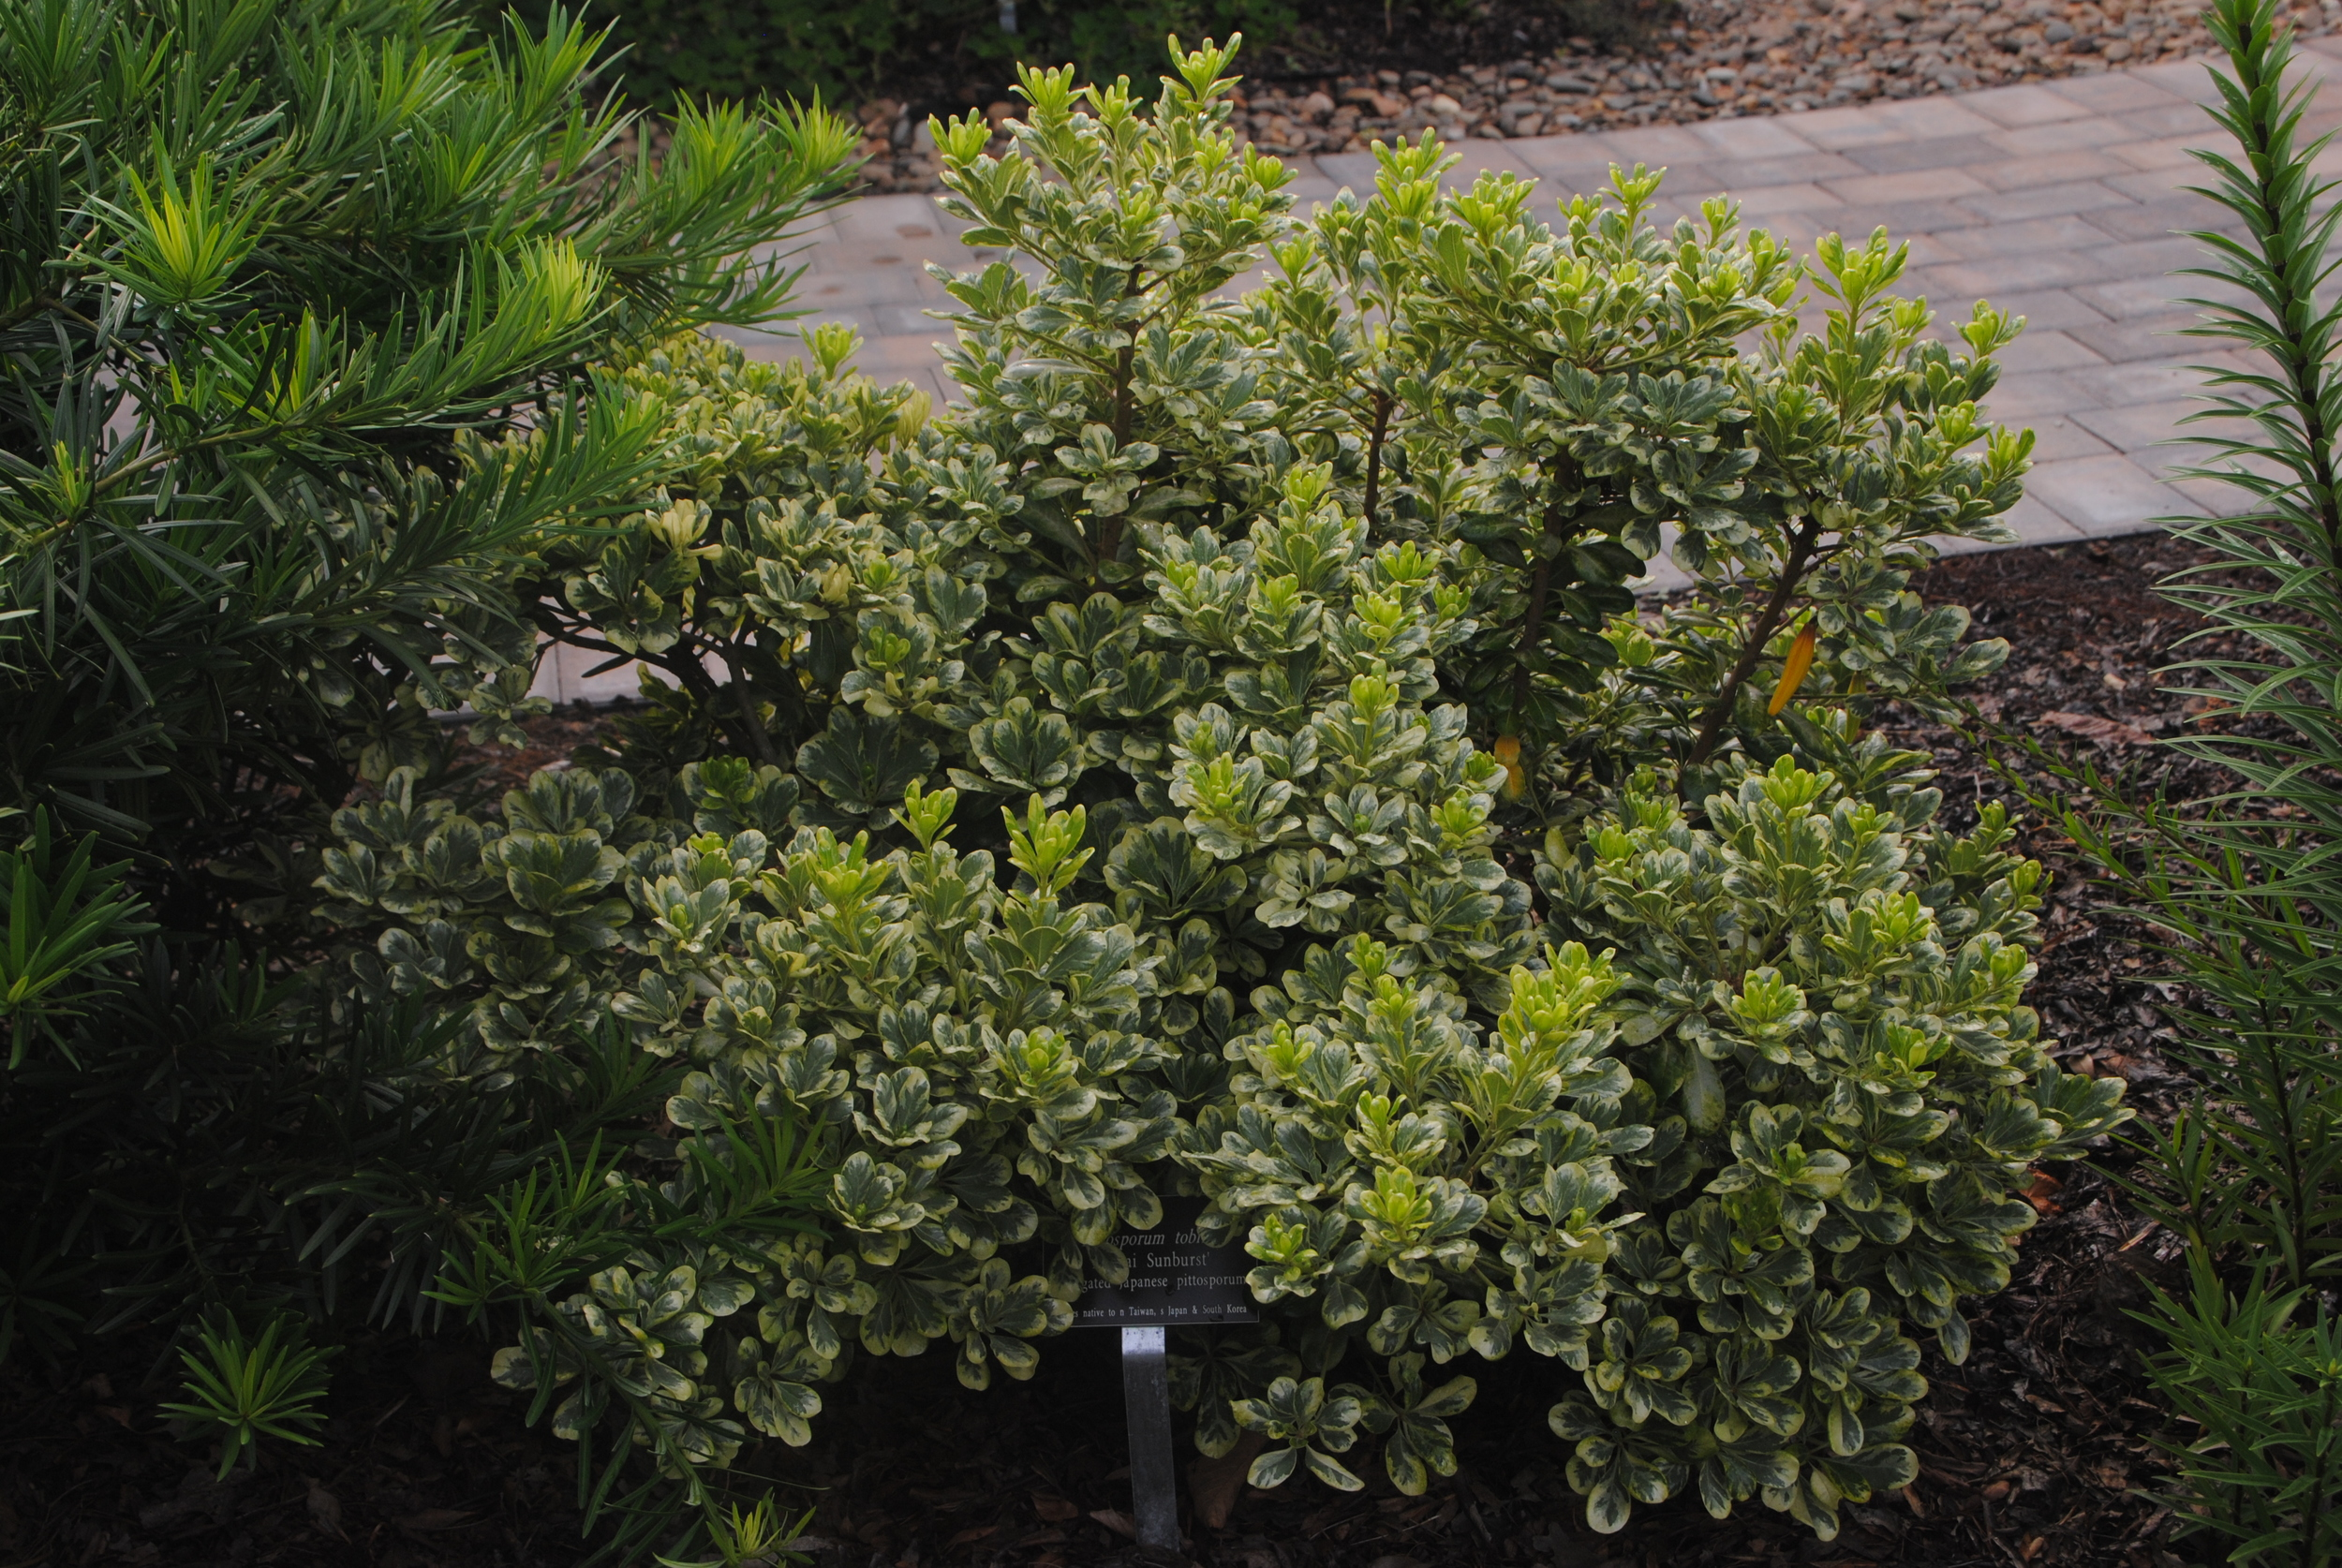 The plant makes a dense mound of brightly variegated evergreen foliage.